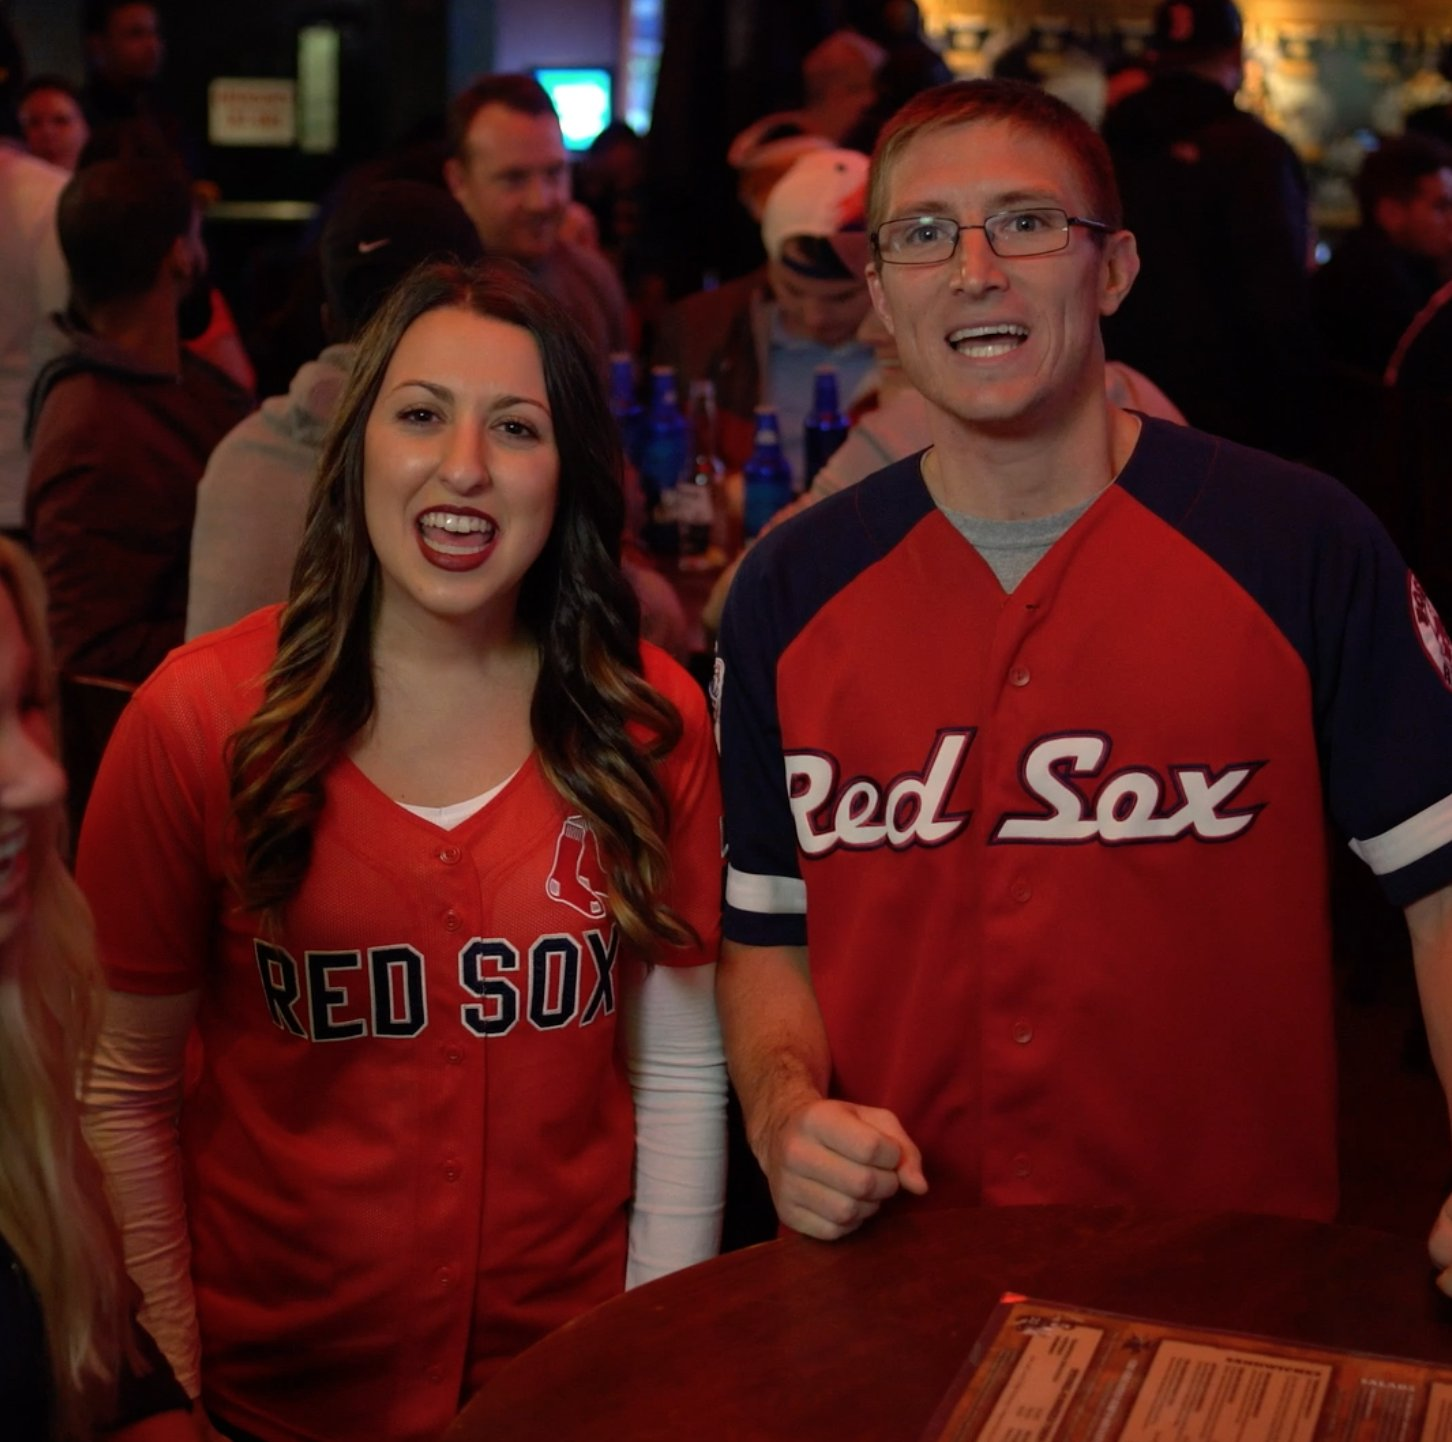 Reloaded twaddle – RT @Mastercard: The Sound of Priceless is… Priceless! Congrats to the @RedSox an...